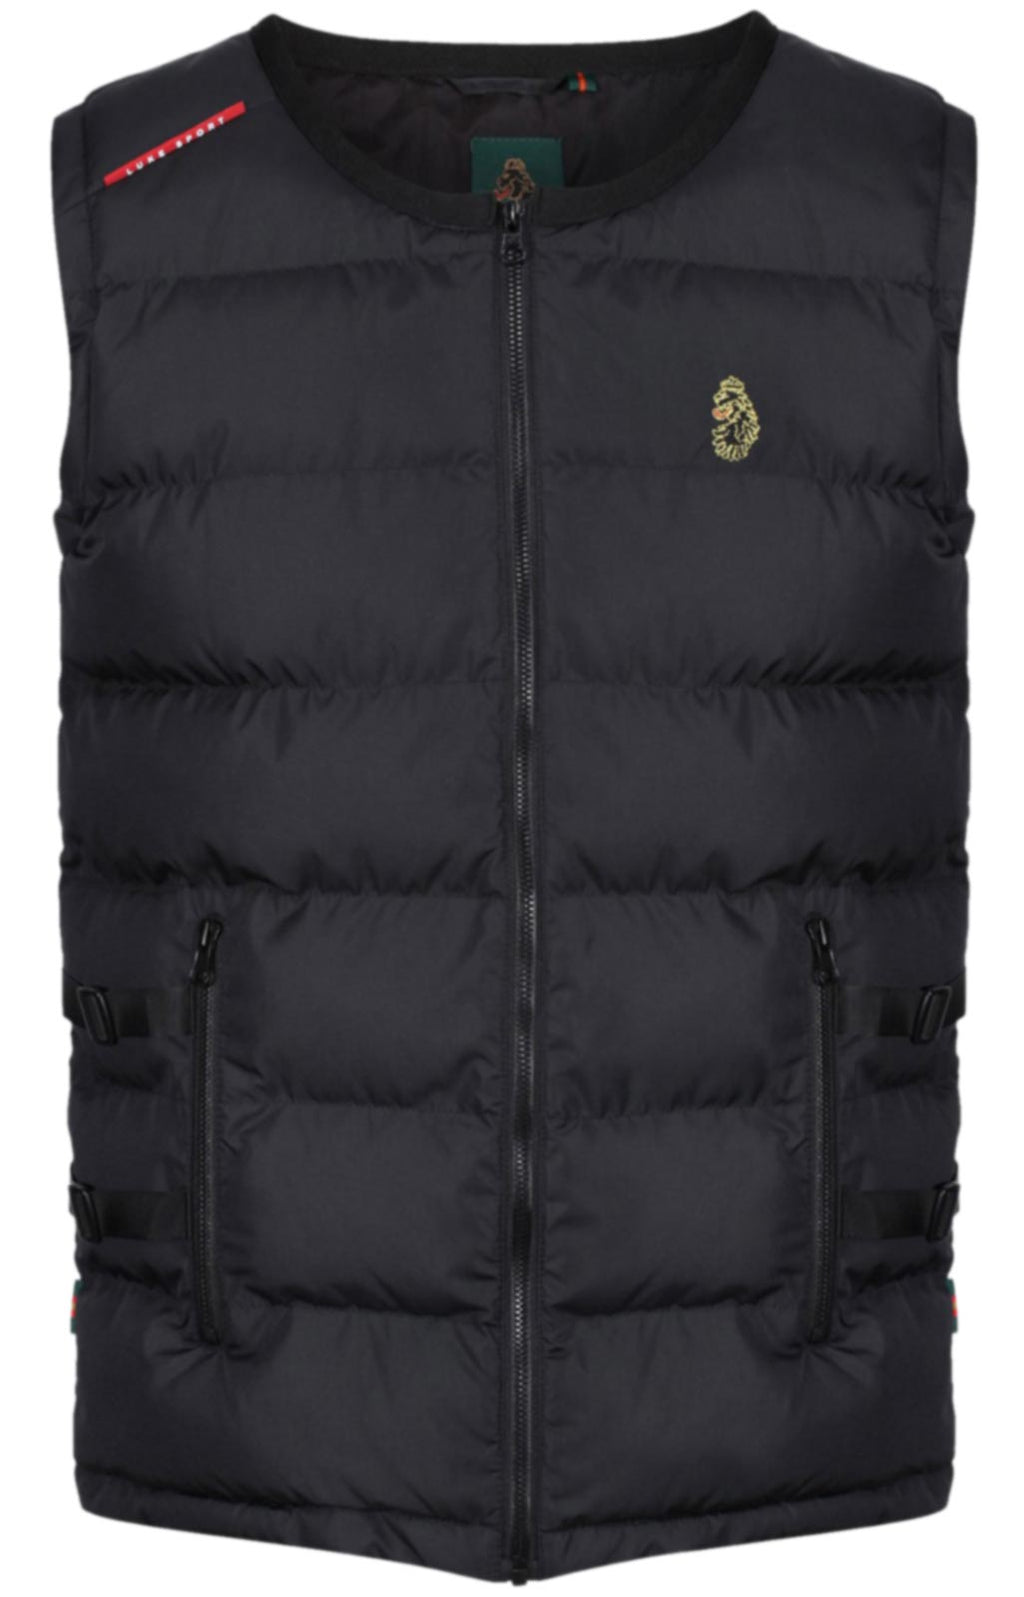 Luke 1977 UV Protection Padded Gilet Black